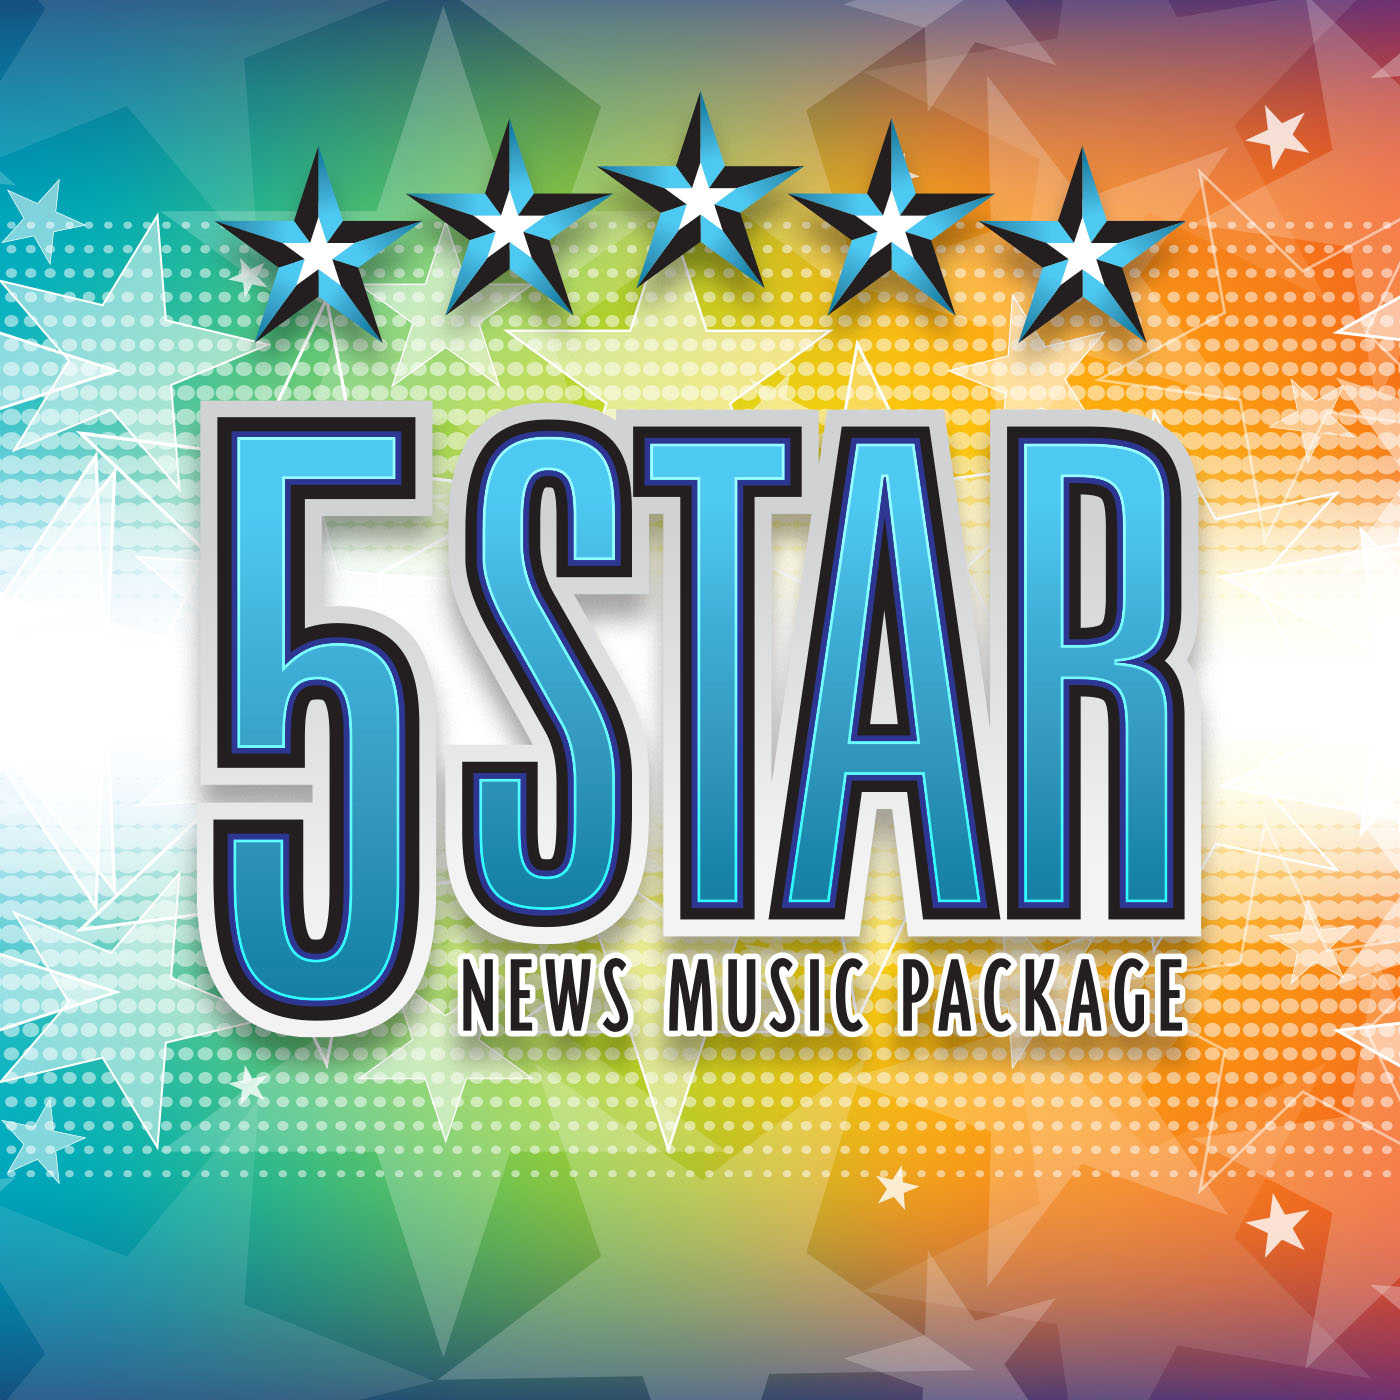 5 Star News Music Package